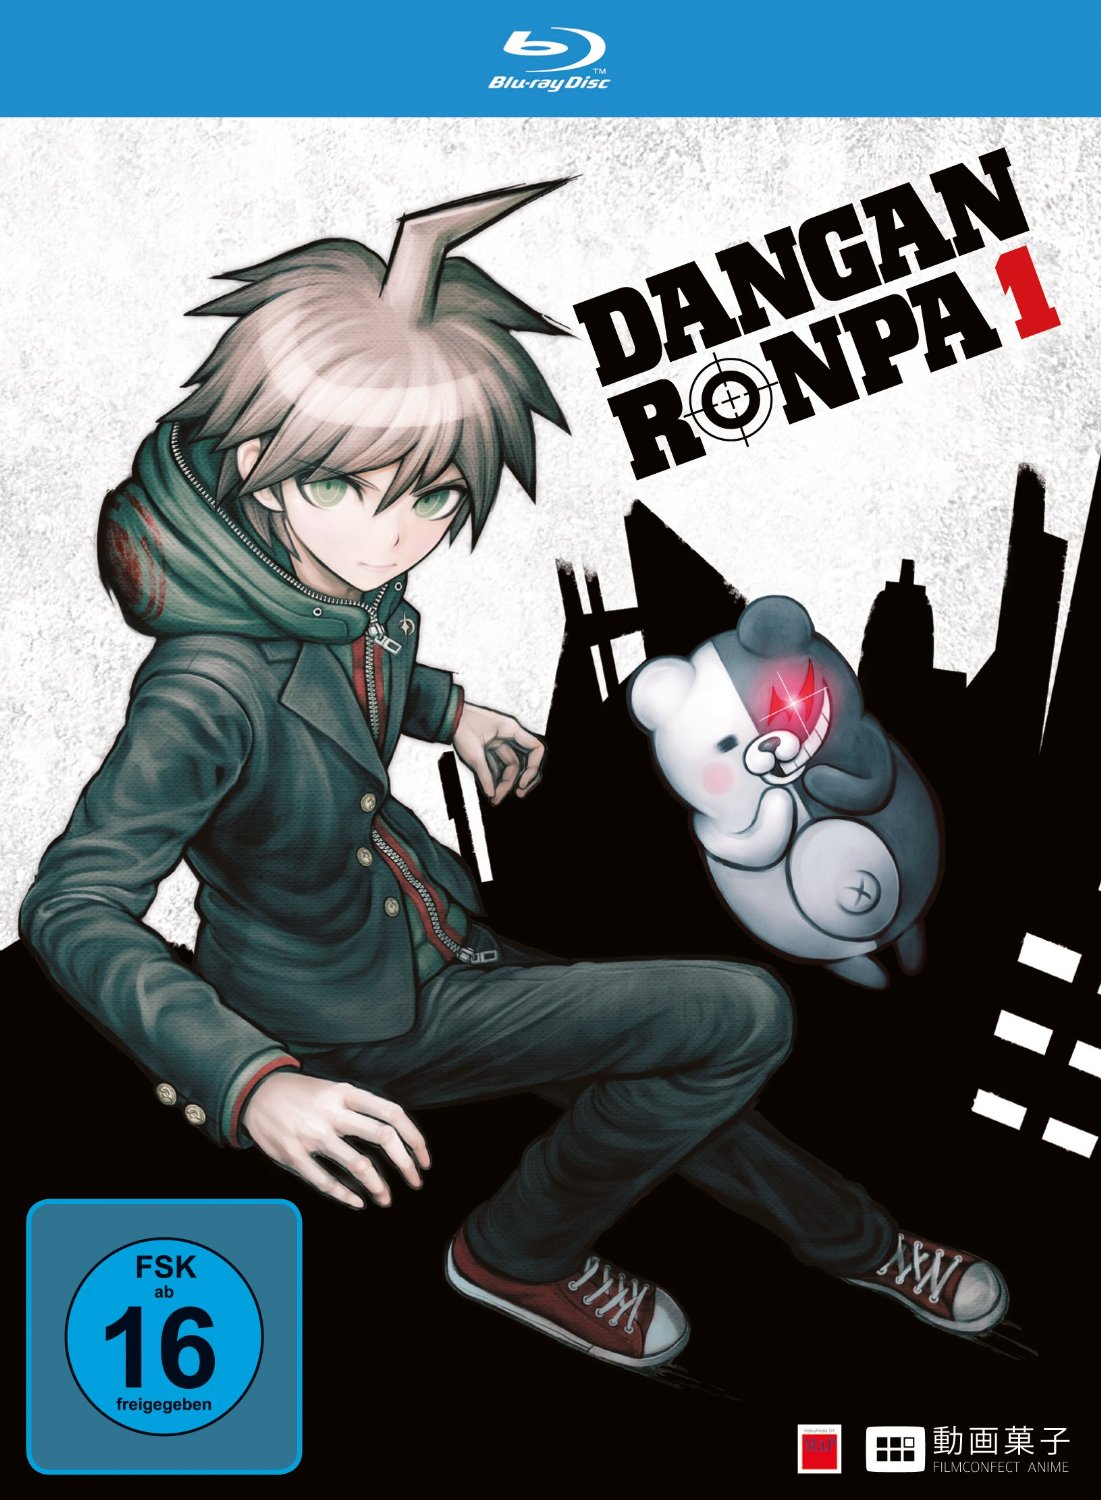 Monatsvorschau-Anime-DVDs-Danganronpa-Vol-1